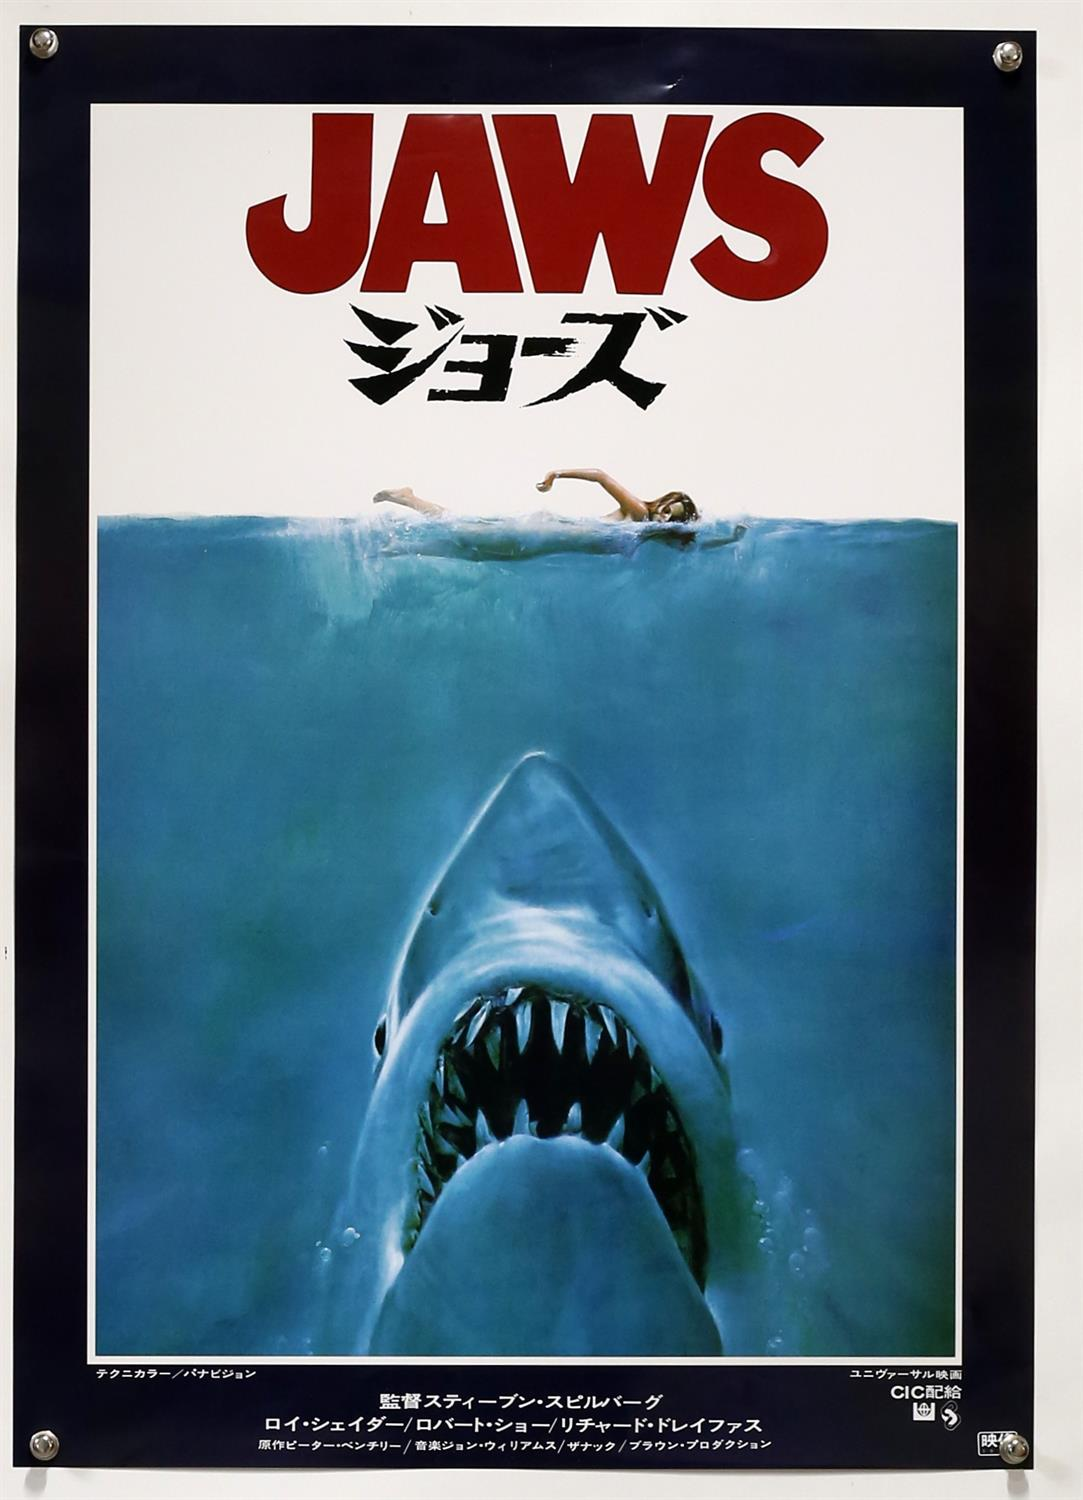 Jaws (1975) Japanese B2 film poster, artwork by Roger Kastel, rolled, 20.25 x 28.5 inches.